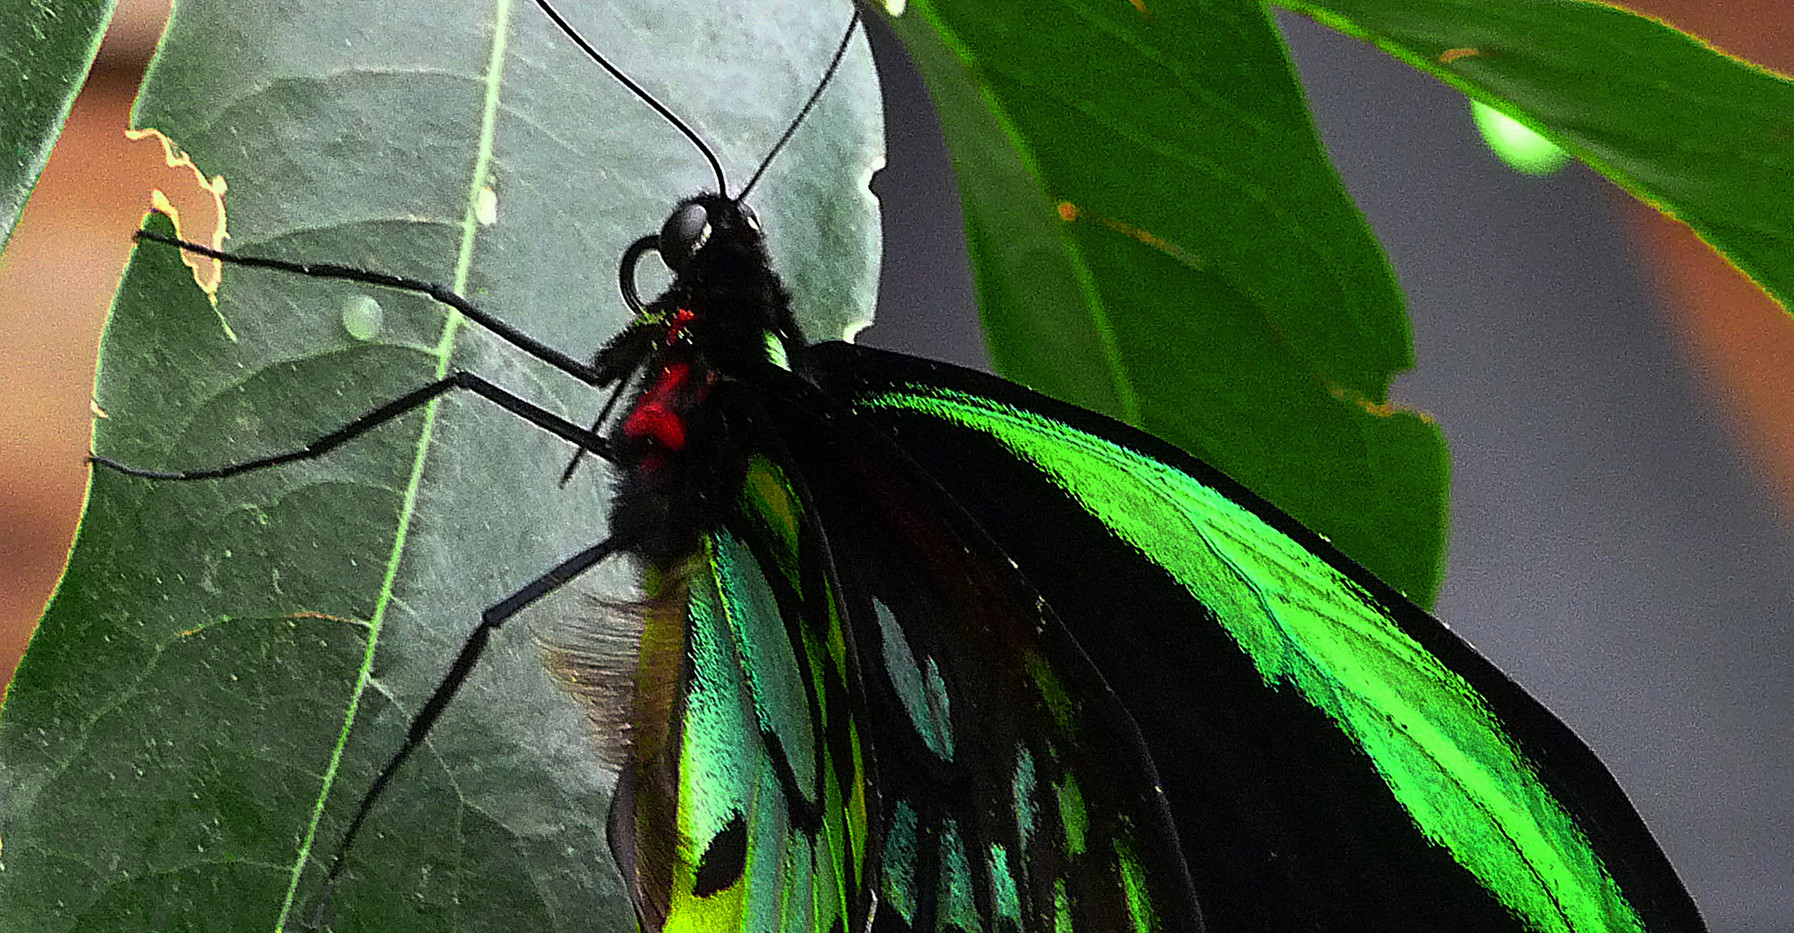 A Green Birdwing